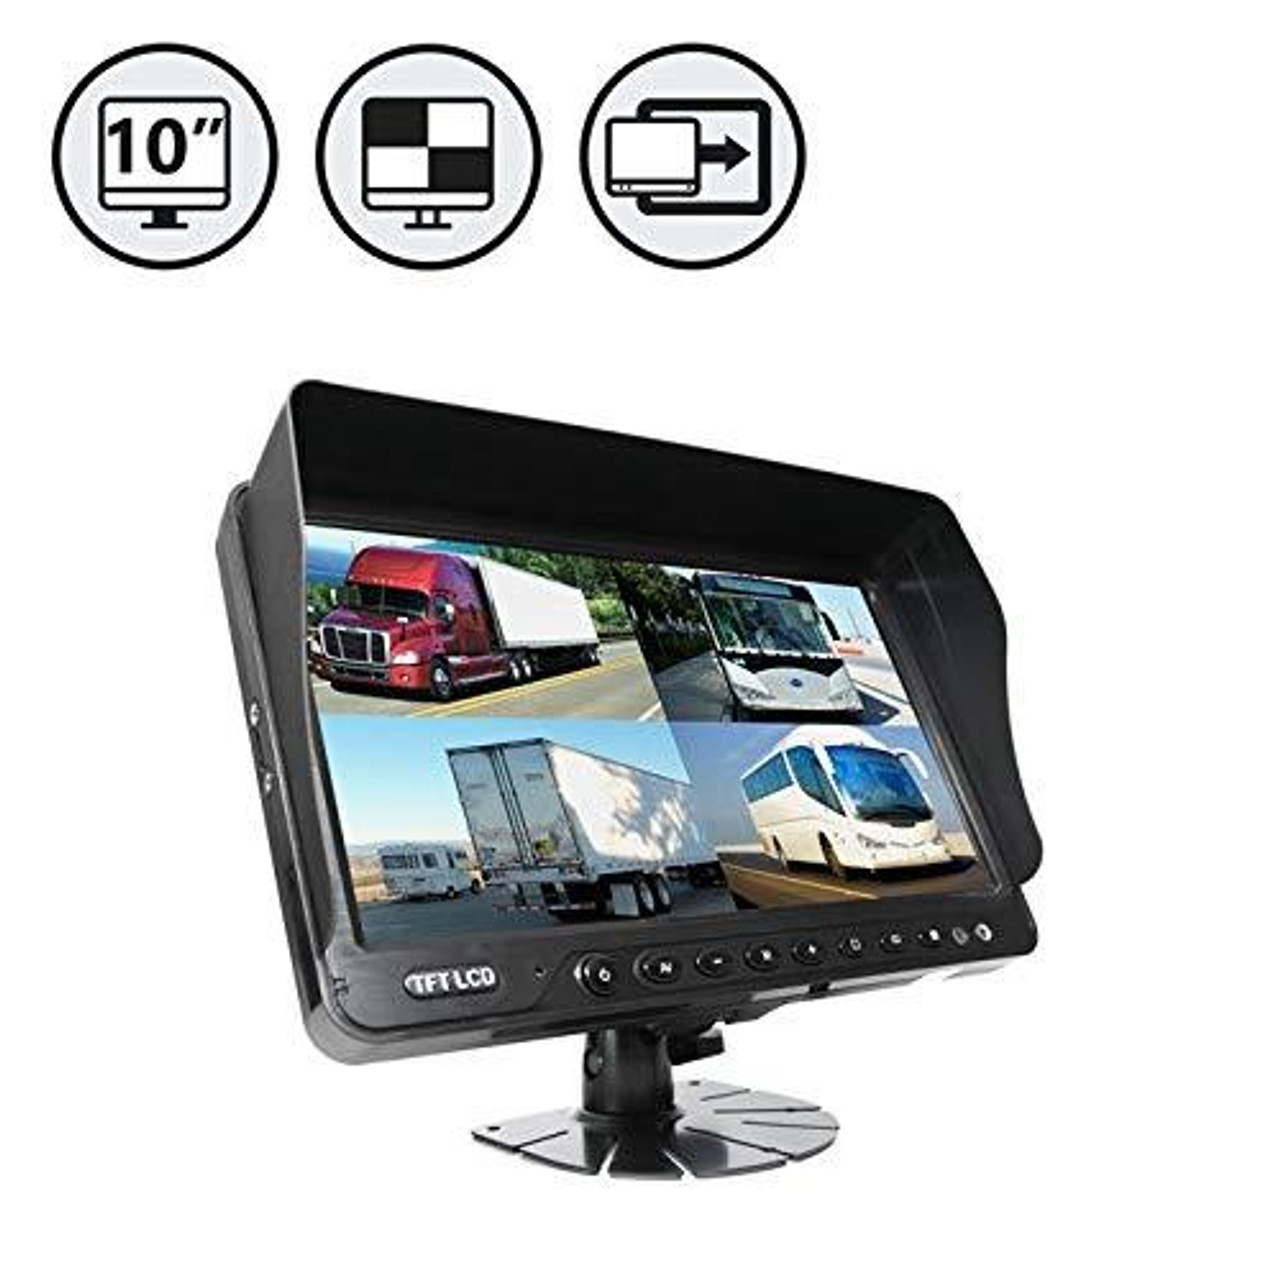 "10"" TFT LCD Digital Quad View Color Monitor with Sunshade and Flushmount"